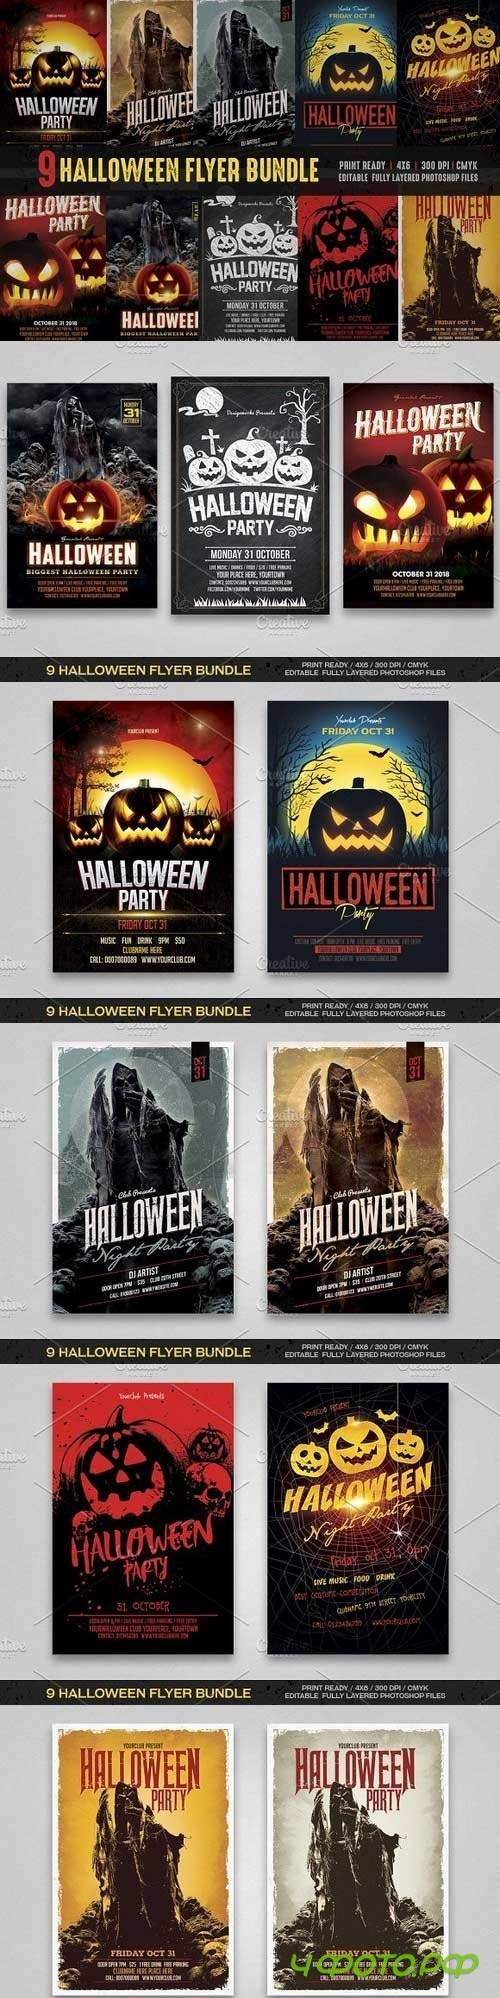 Halloween Flyer Bundle - 916585